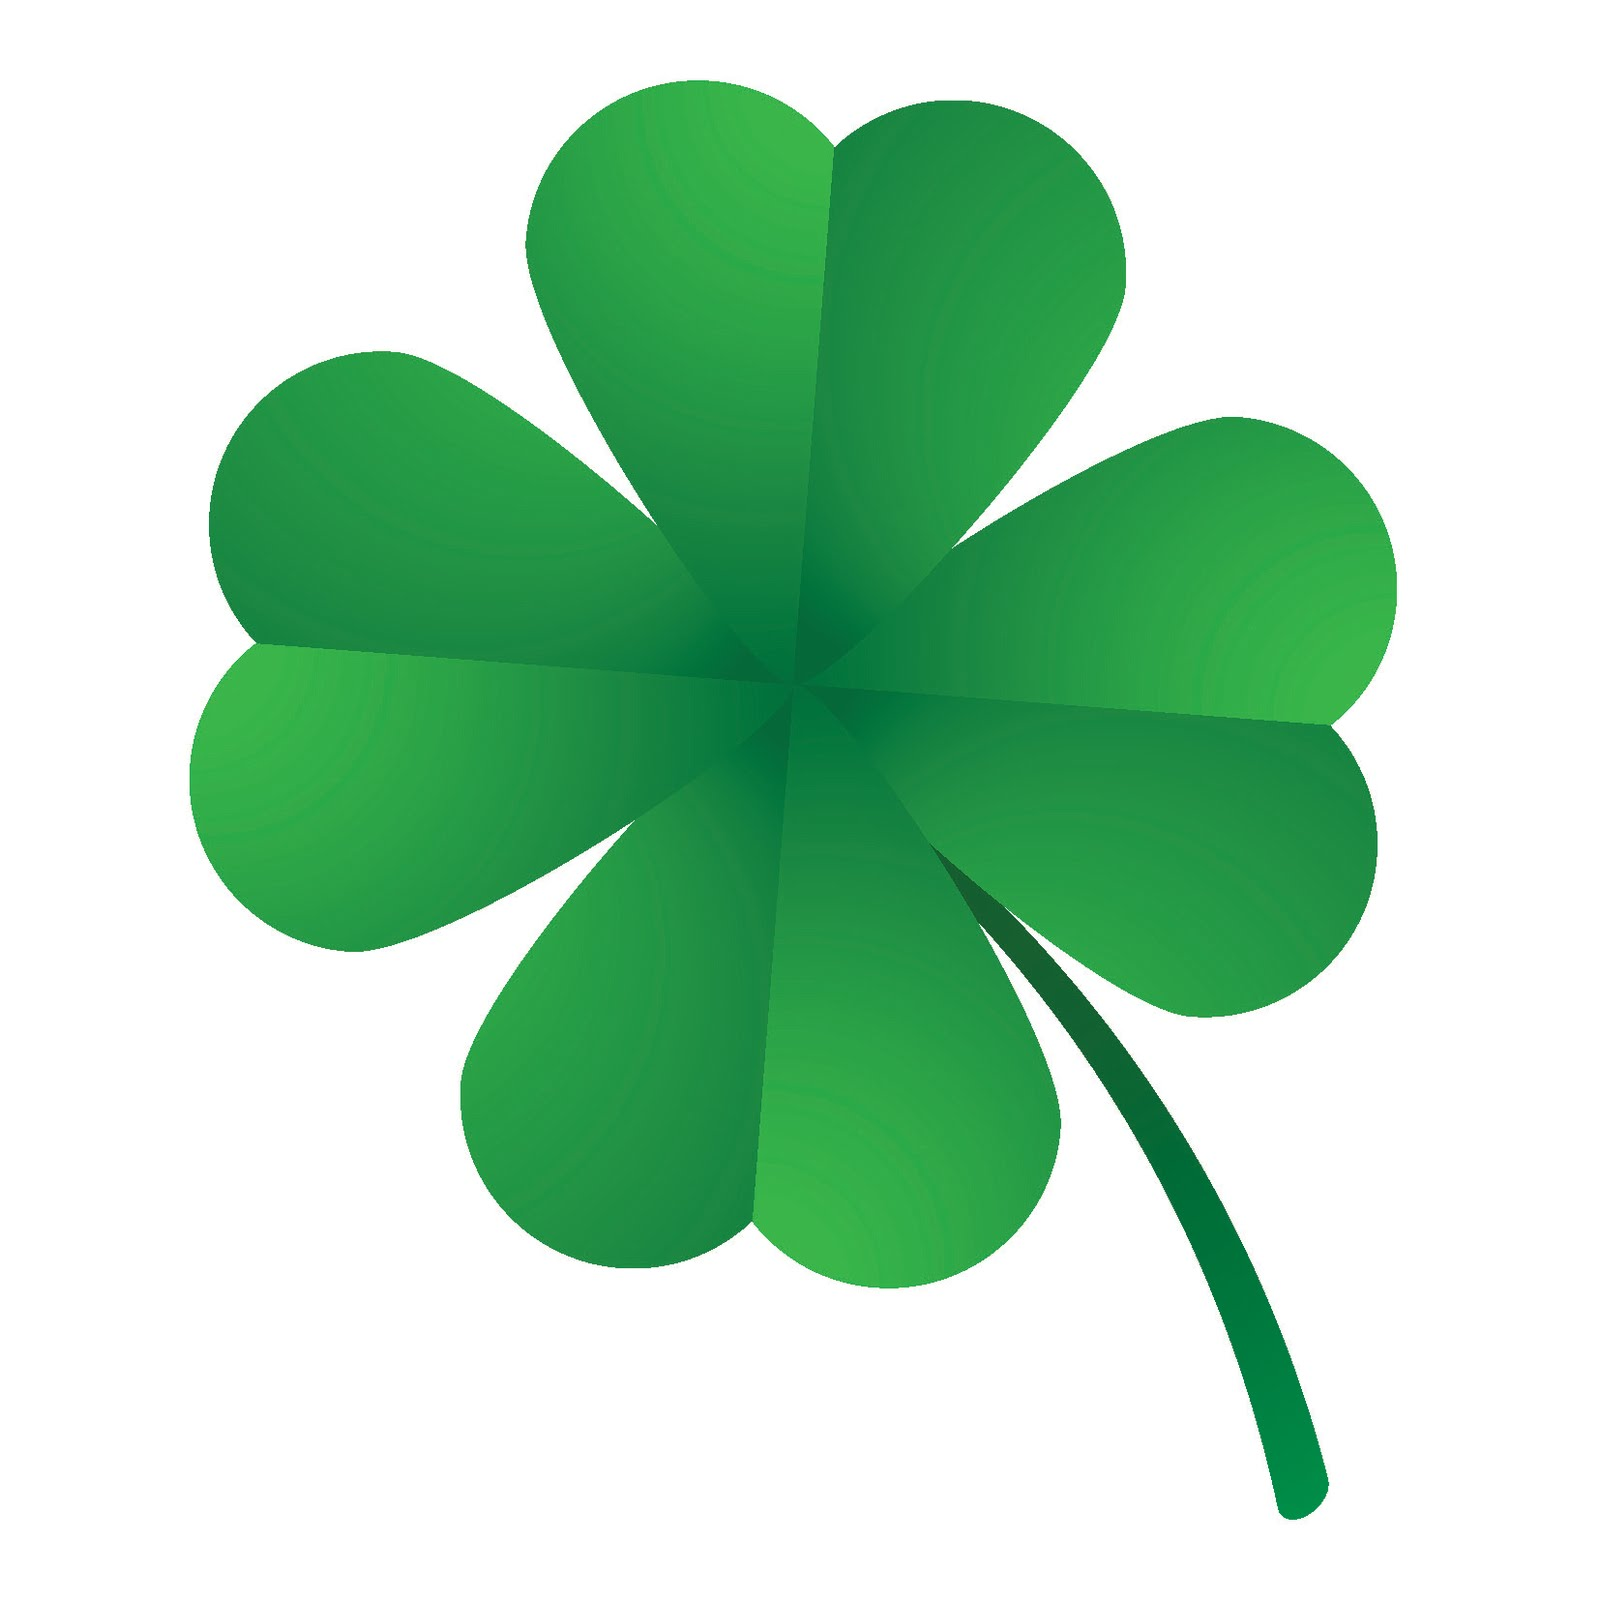 Picture Of A Four Leaf Clover - Clipart library